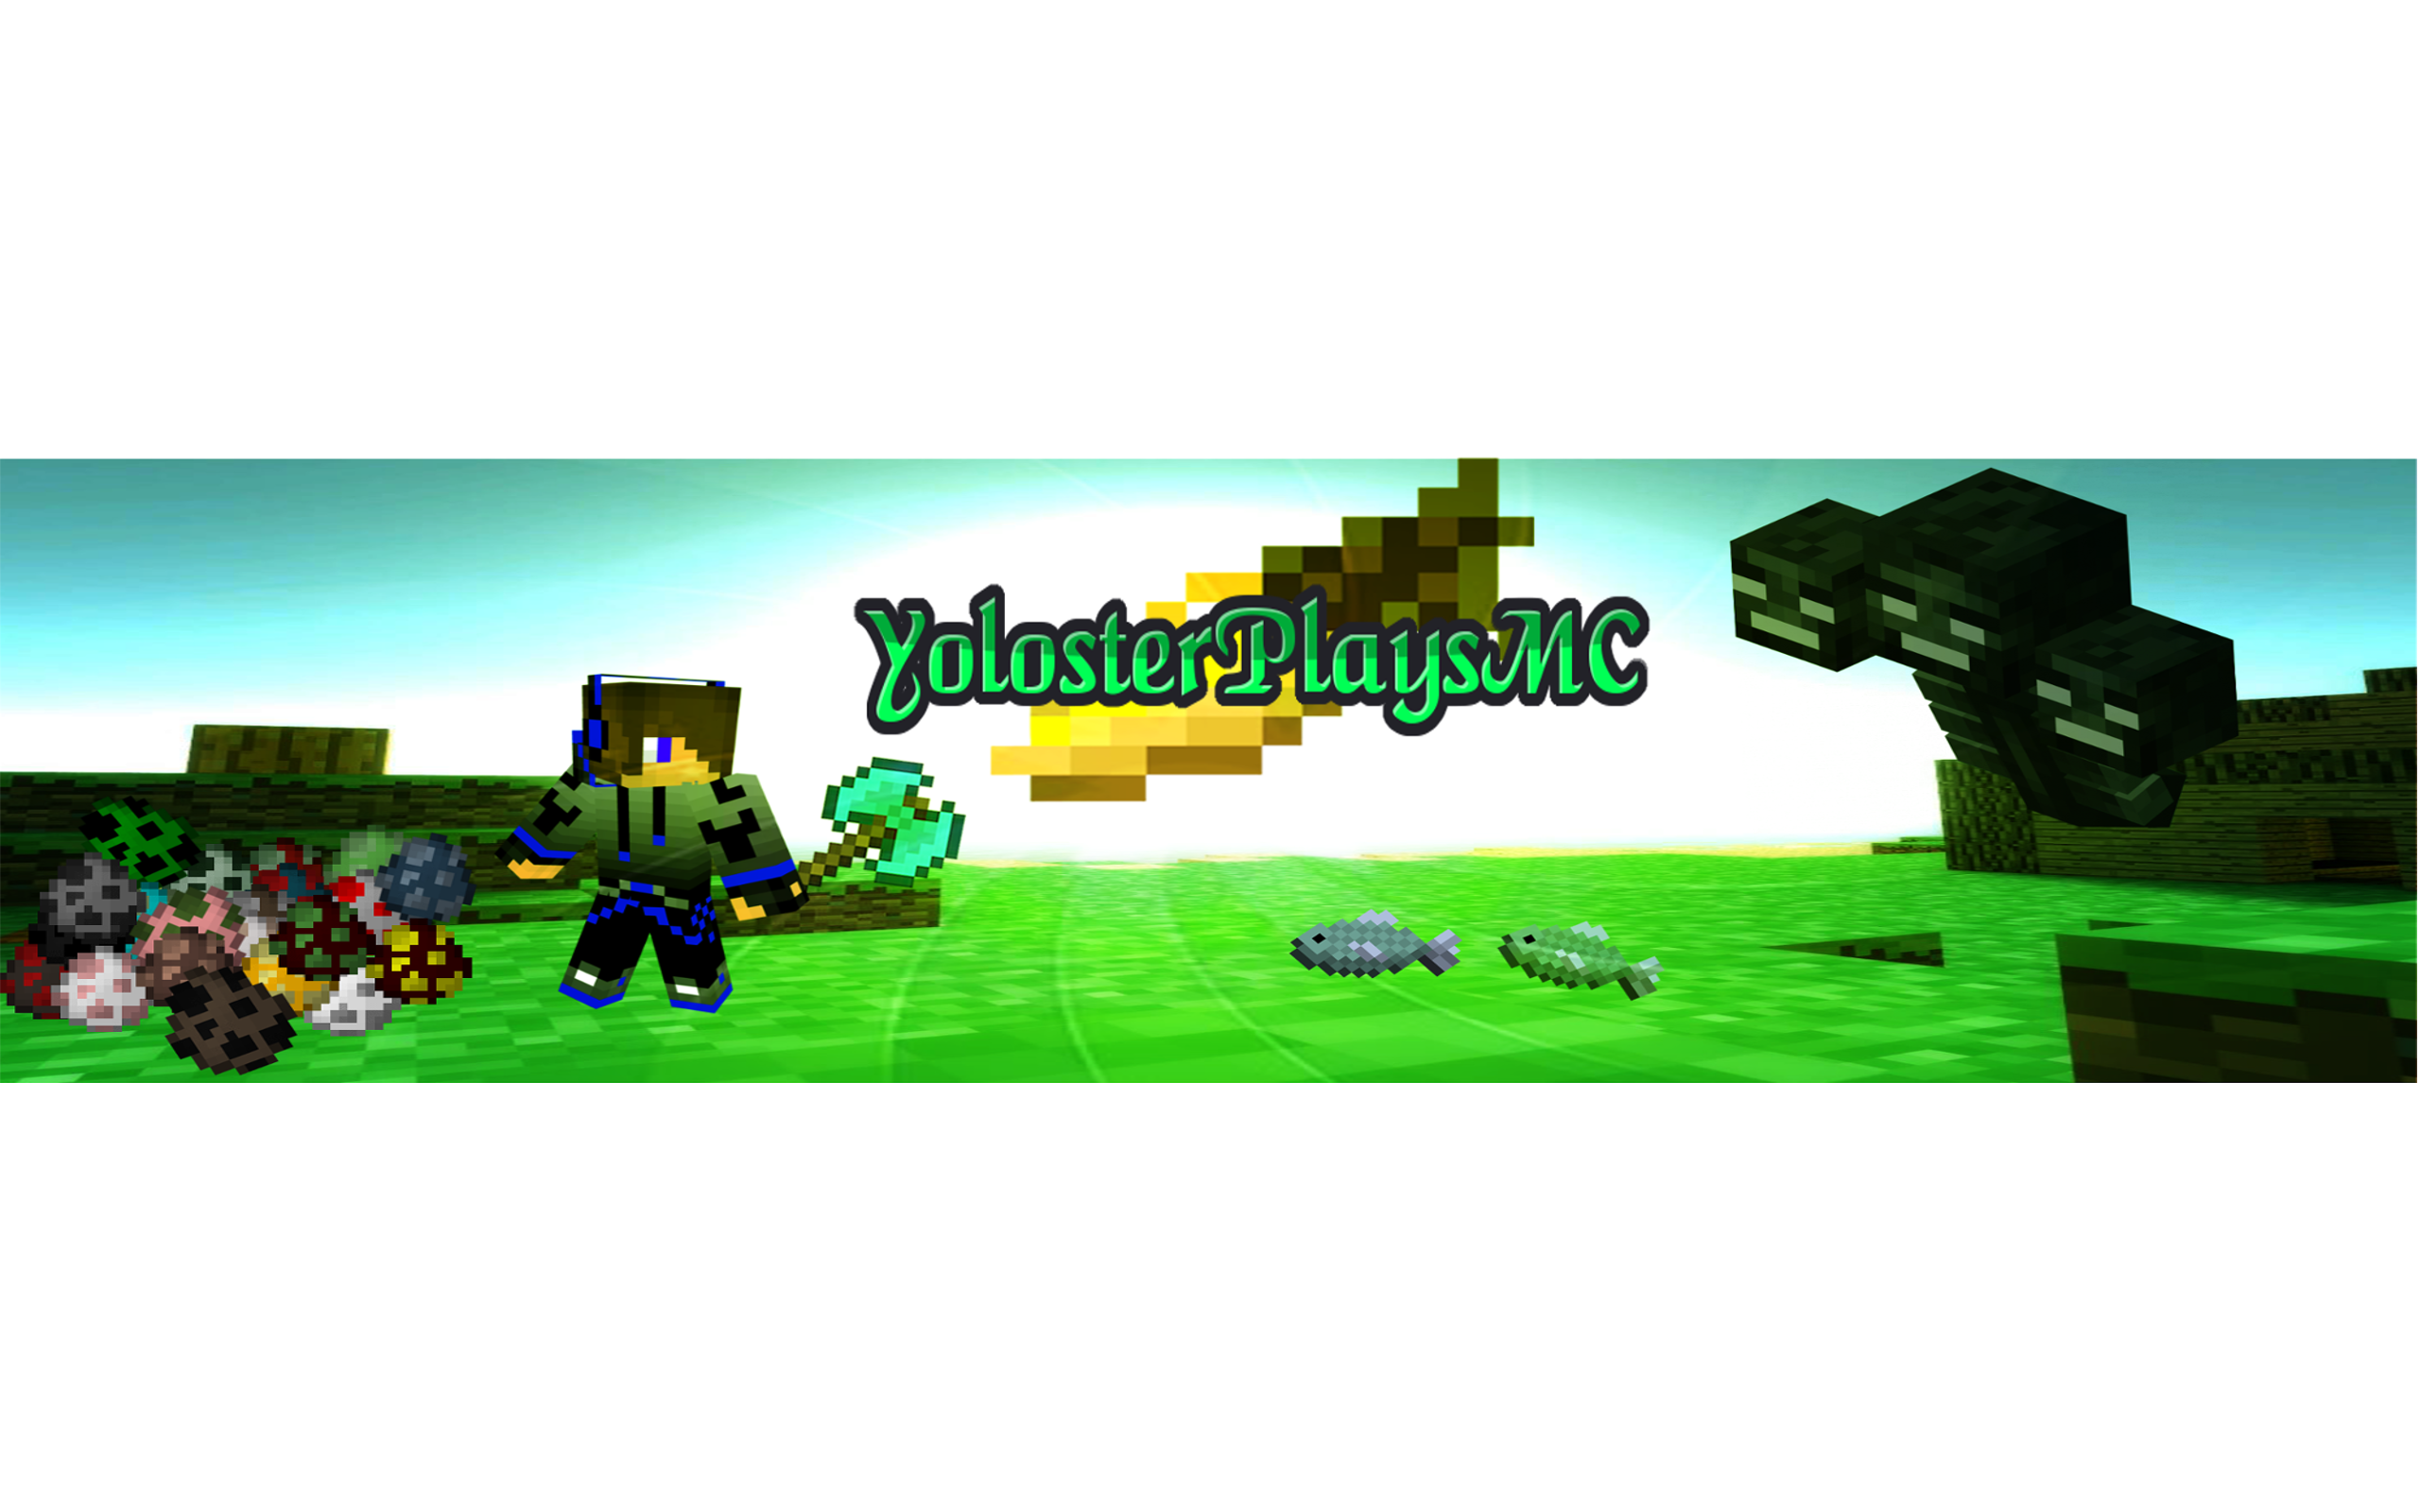 Appealing fashion banner channel. Youtube clipart minecraft